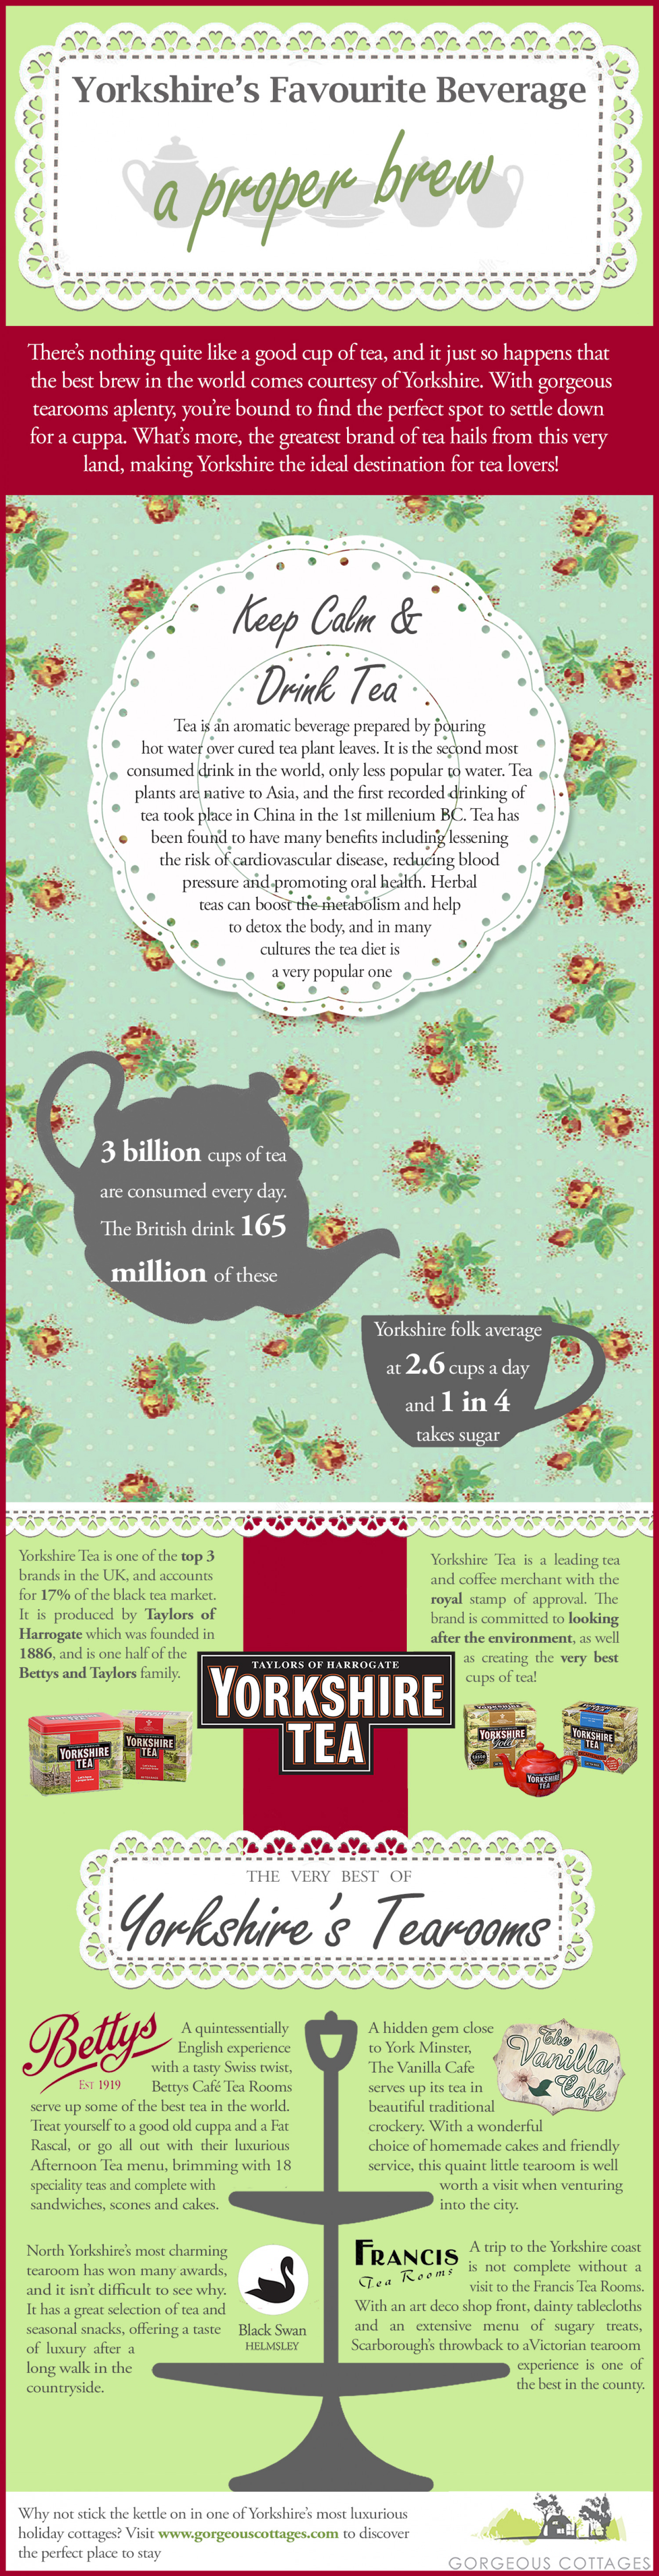 Yorkshire's Favourite Beverage: A Proper Brew Infographic